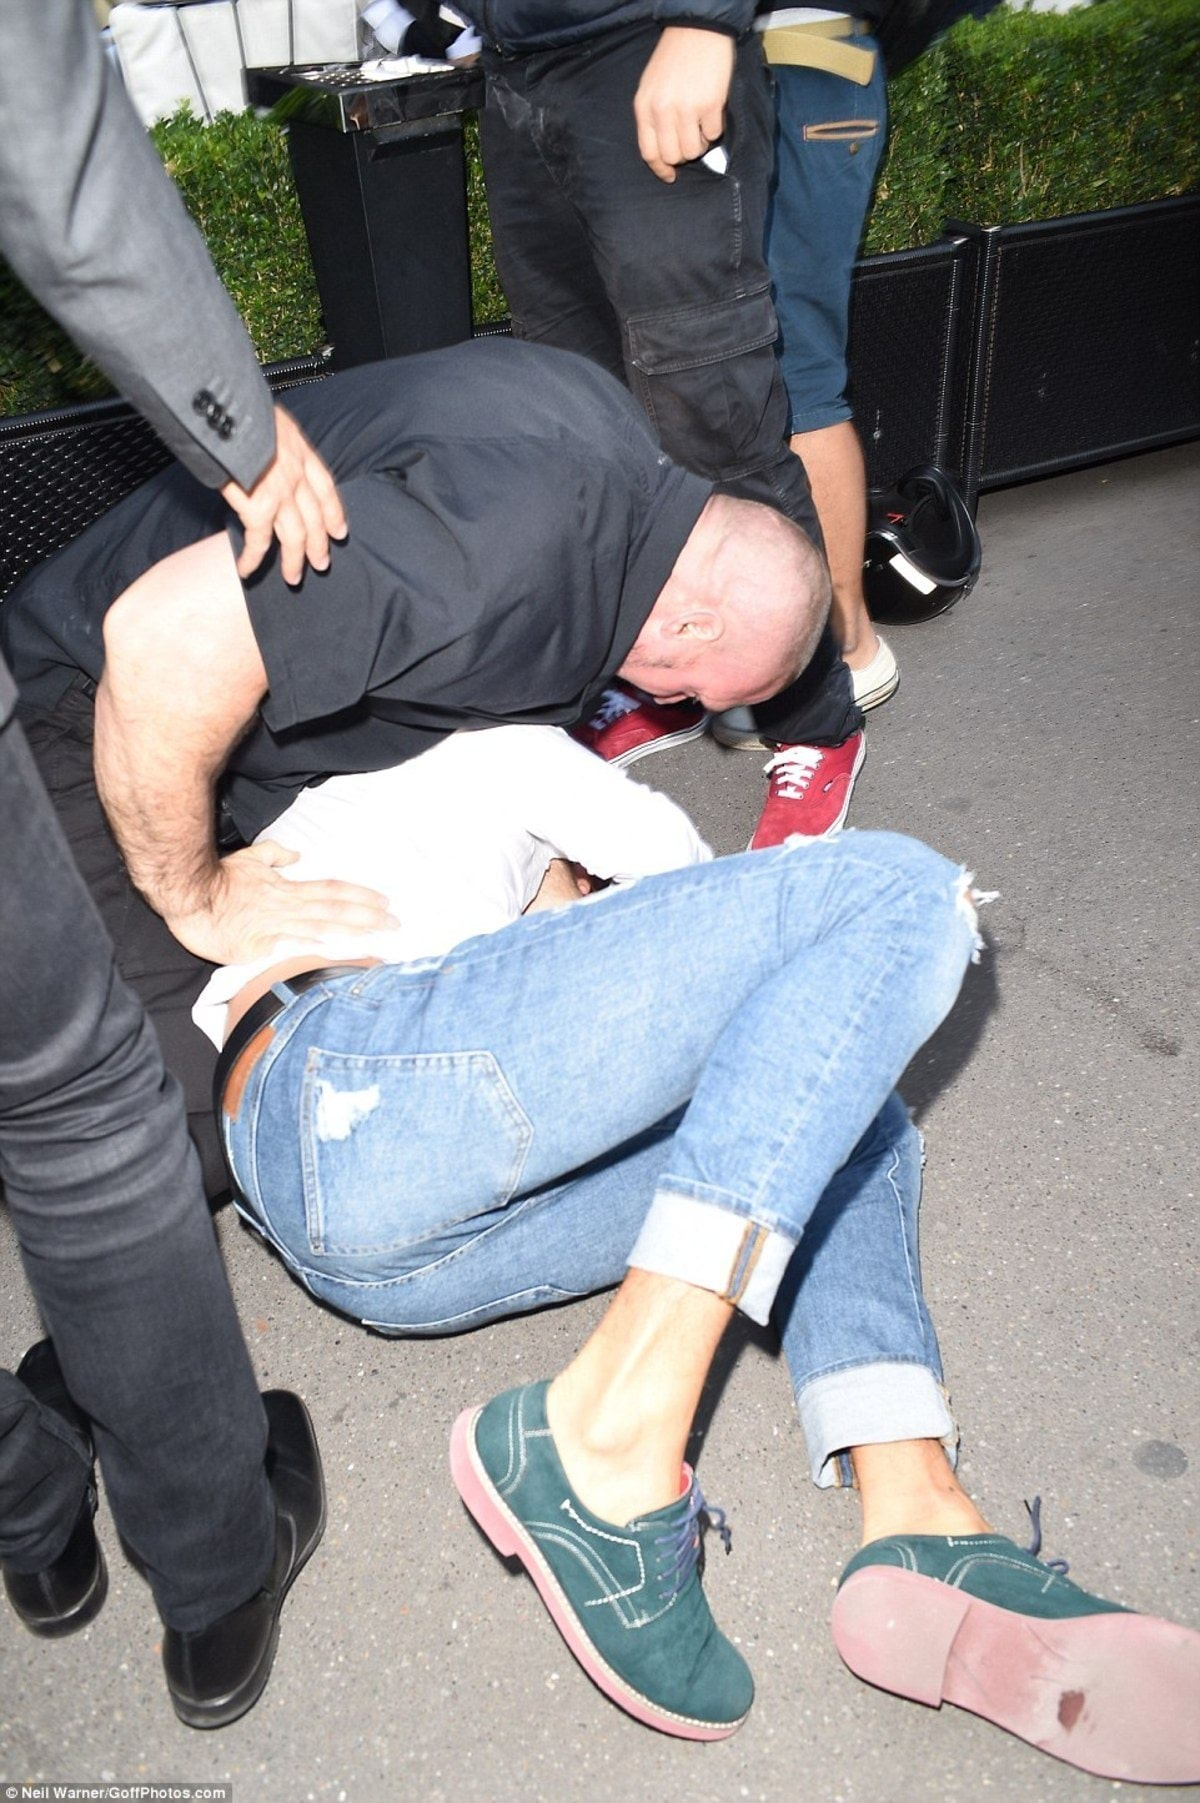 38E2CBAF00000578-3811953-Tackled_Kim_s_security_detail_dragged_Sediuk_to_the_ground_and_p-a-204_1475086730241